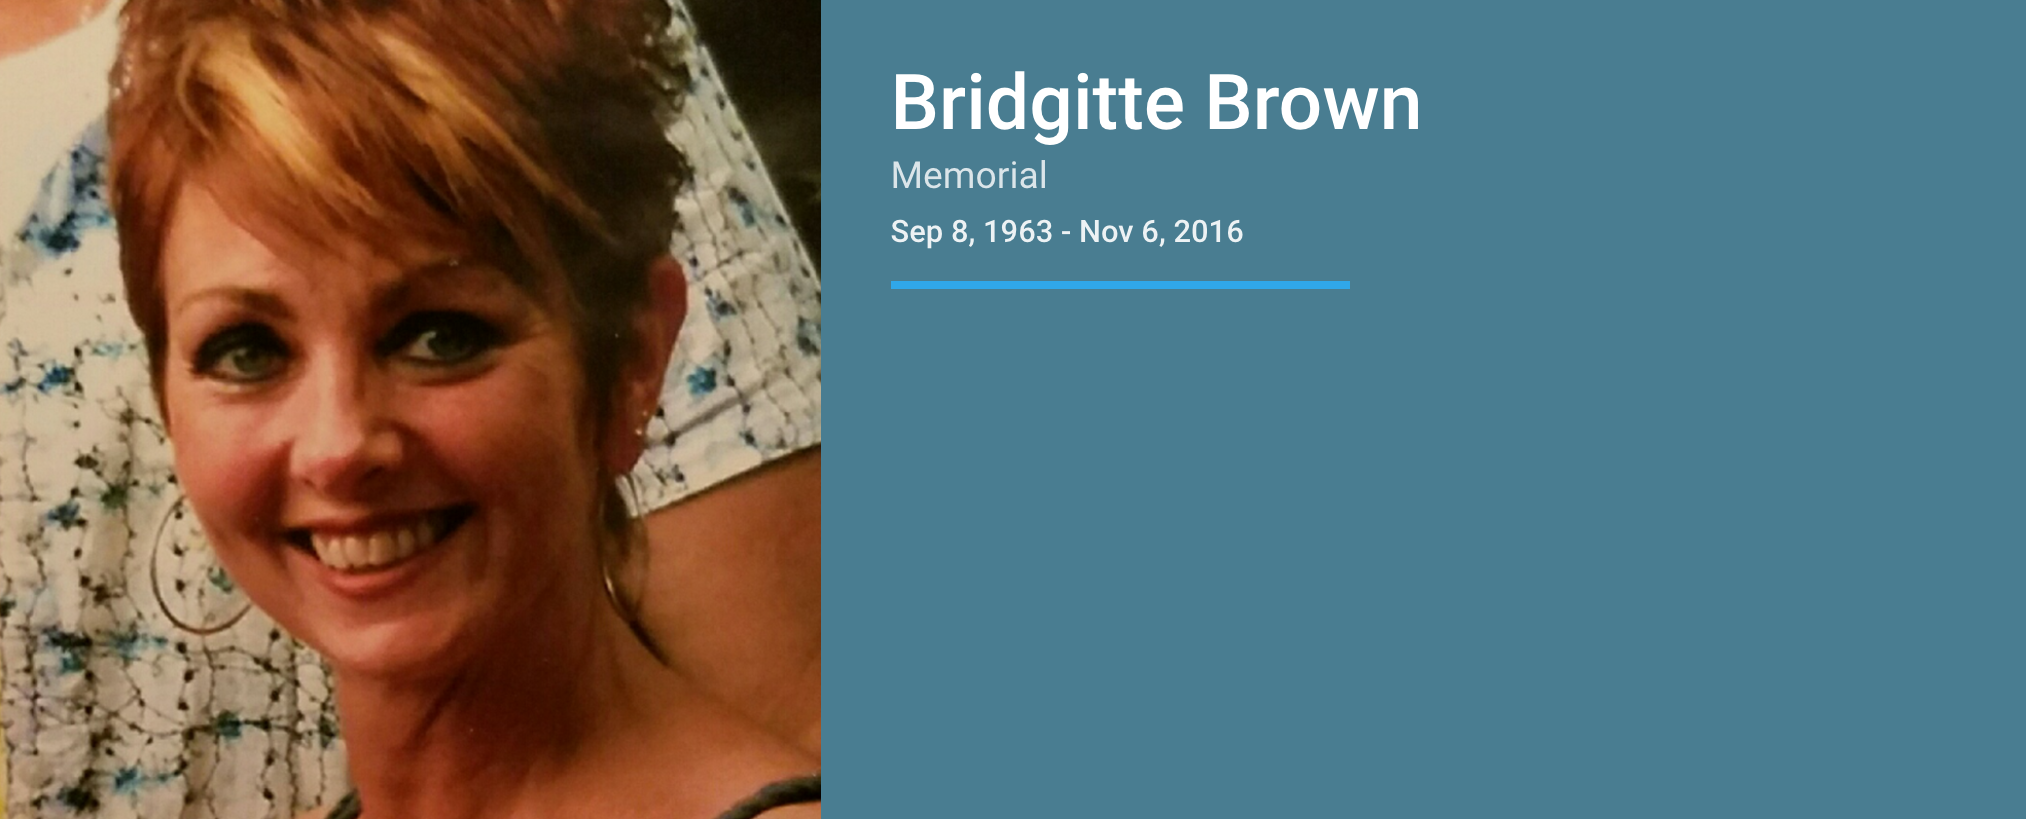 Bridgitte Brown